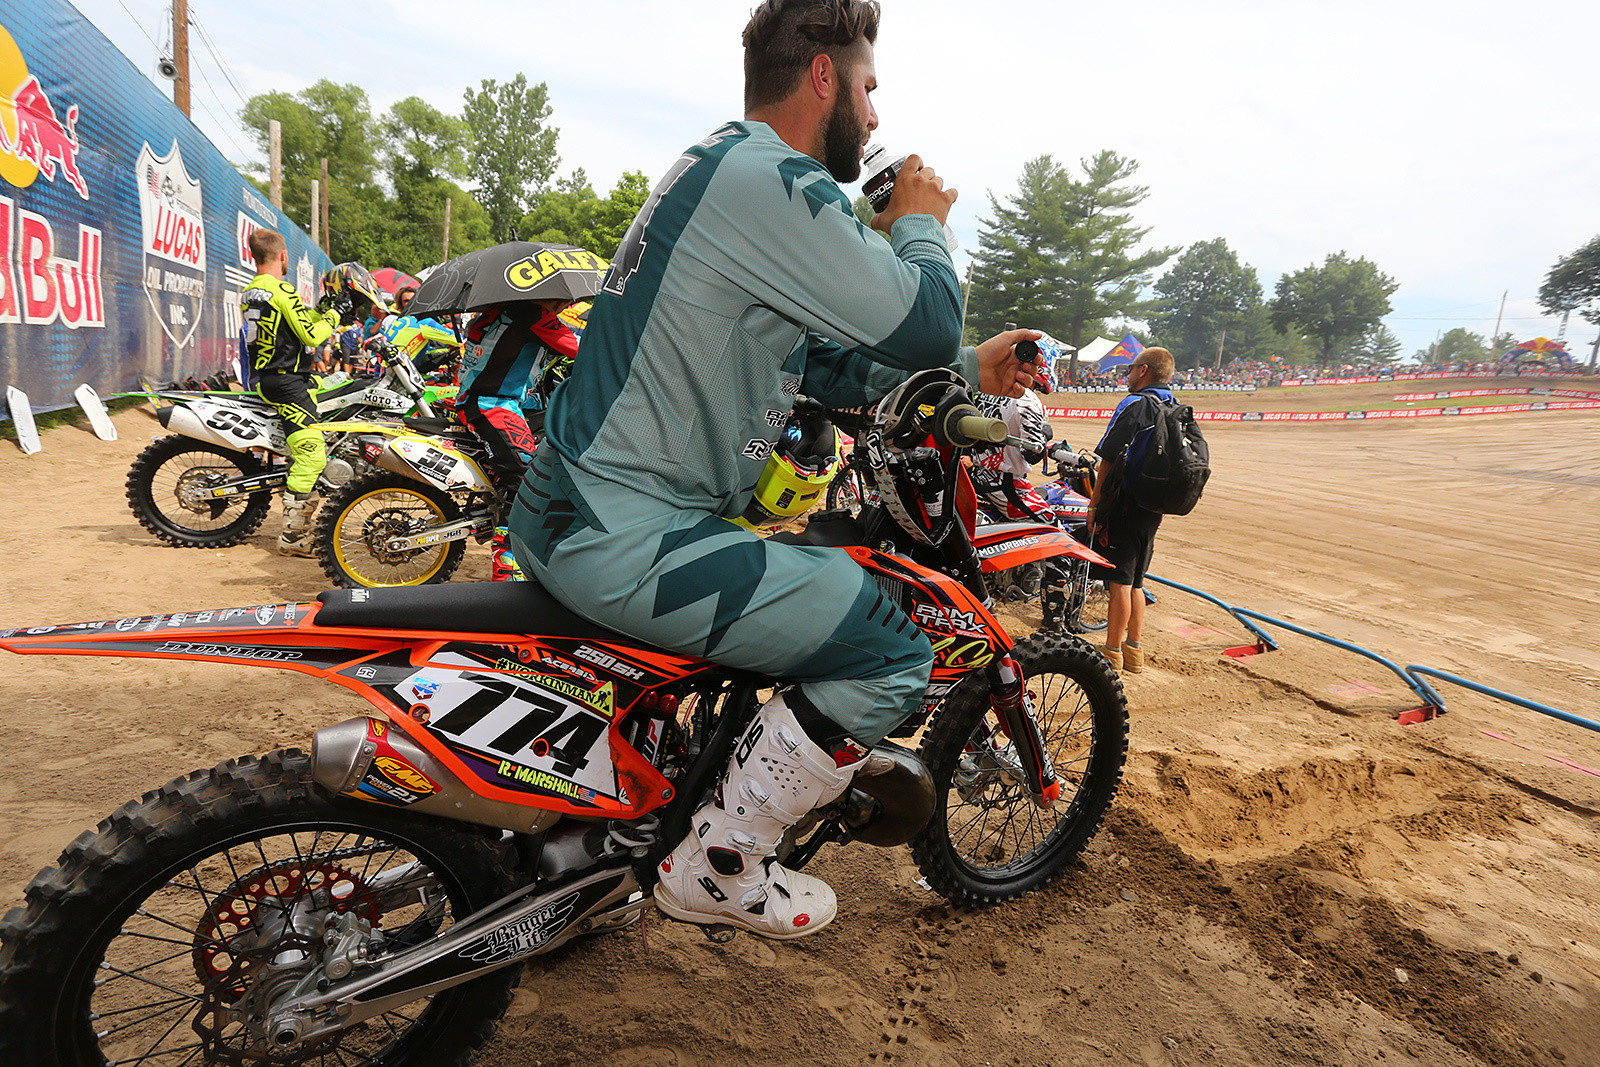 Robbie Marshall said he had to take a couple days off from his day job as an excavator operator to make it to race The Wick. We love the Working Man art on the side of his KTM. The locals at Southwick love their two-strokes, and Robbie was making this one sing. Lining up for moto two, he did mention that the air-conditioned cab of the equipment he uses during weekdays was starting to sound appealing. It was plenty warm and muggy at the track.